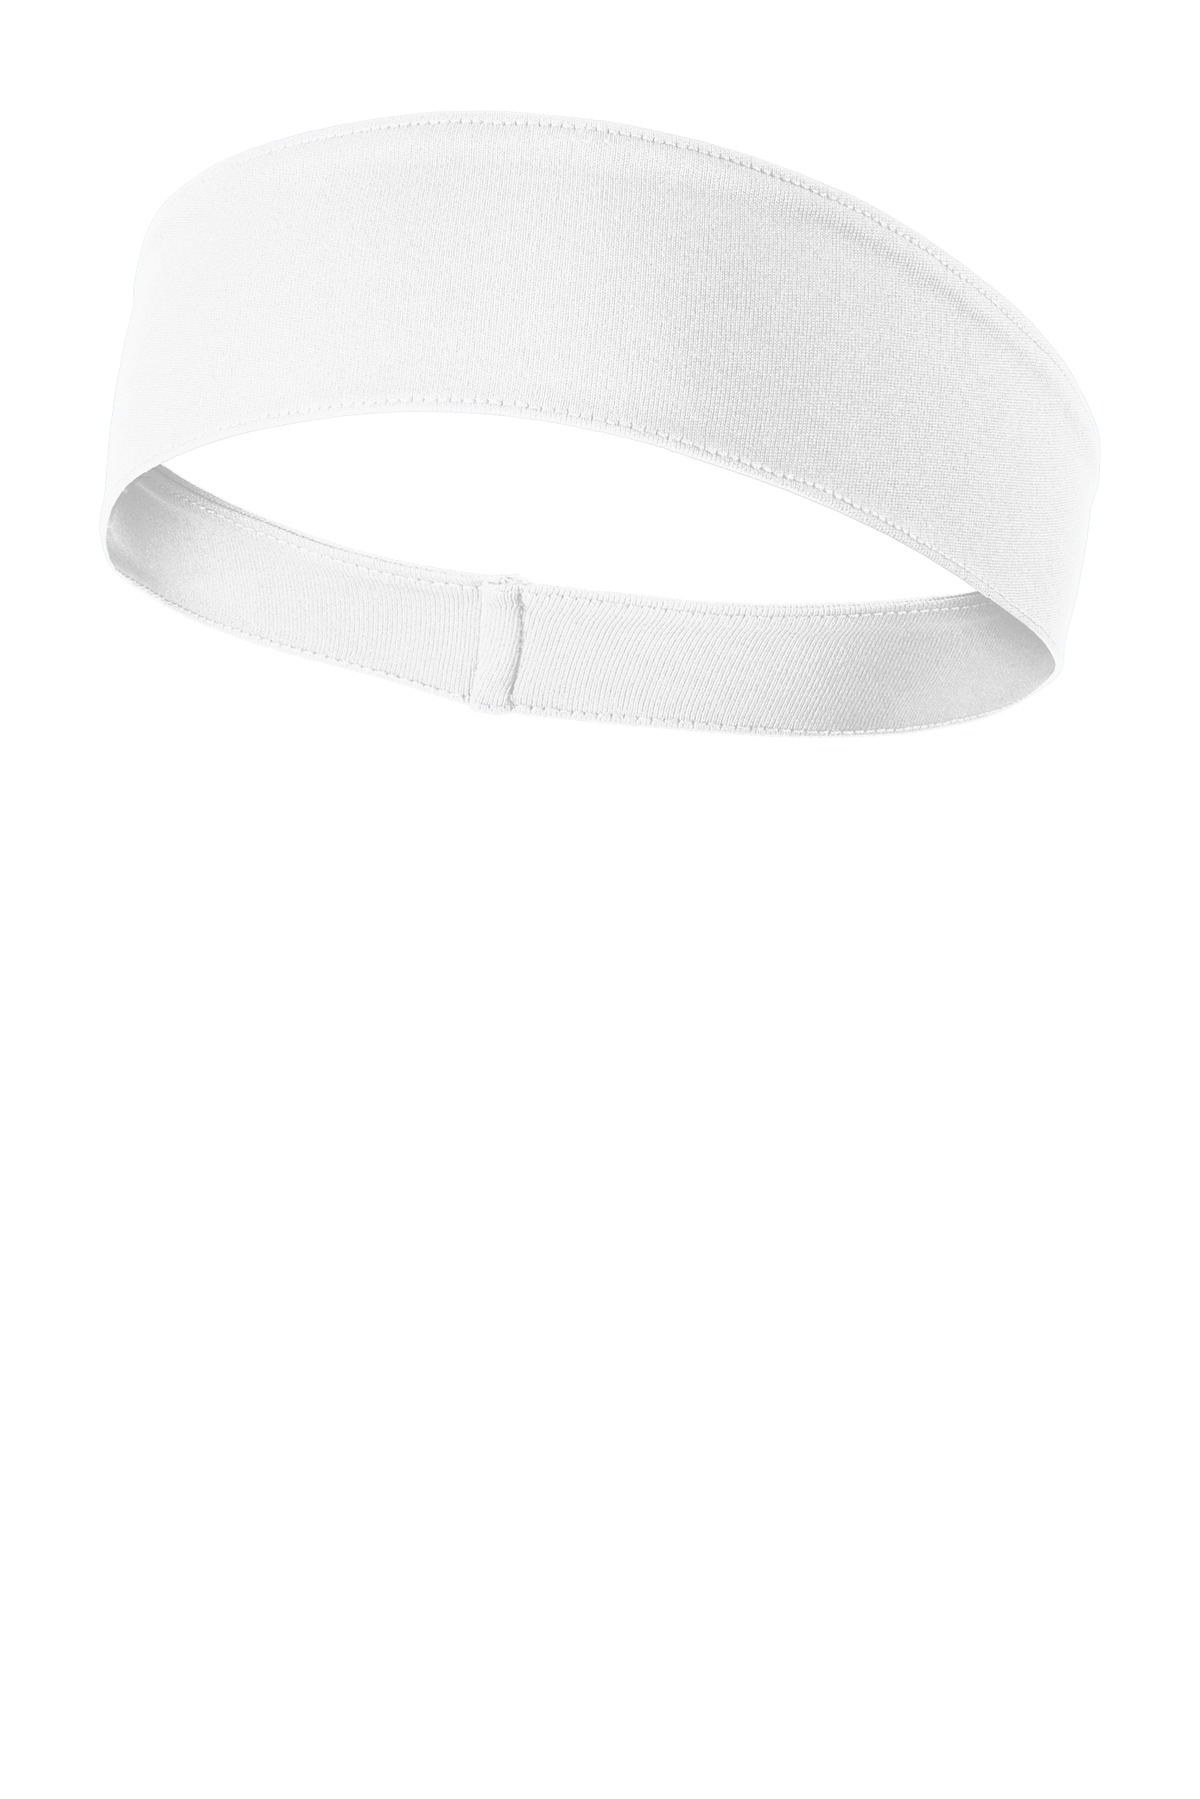 Sport-Tek ®  PosiCharge ®  Competitor ™  Headband. STA35 - White